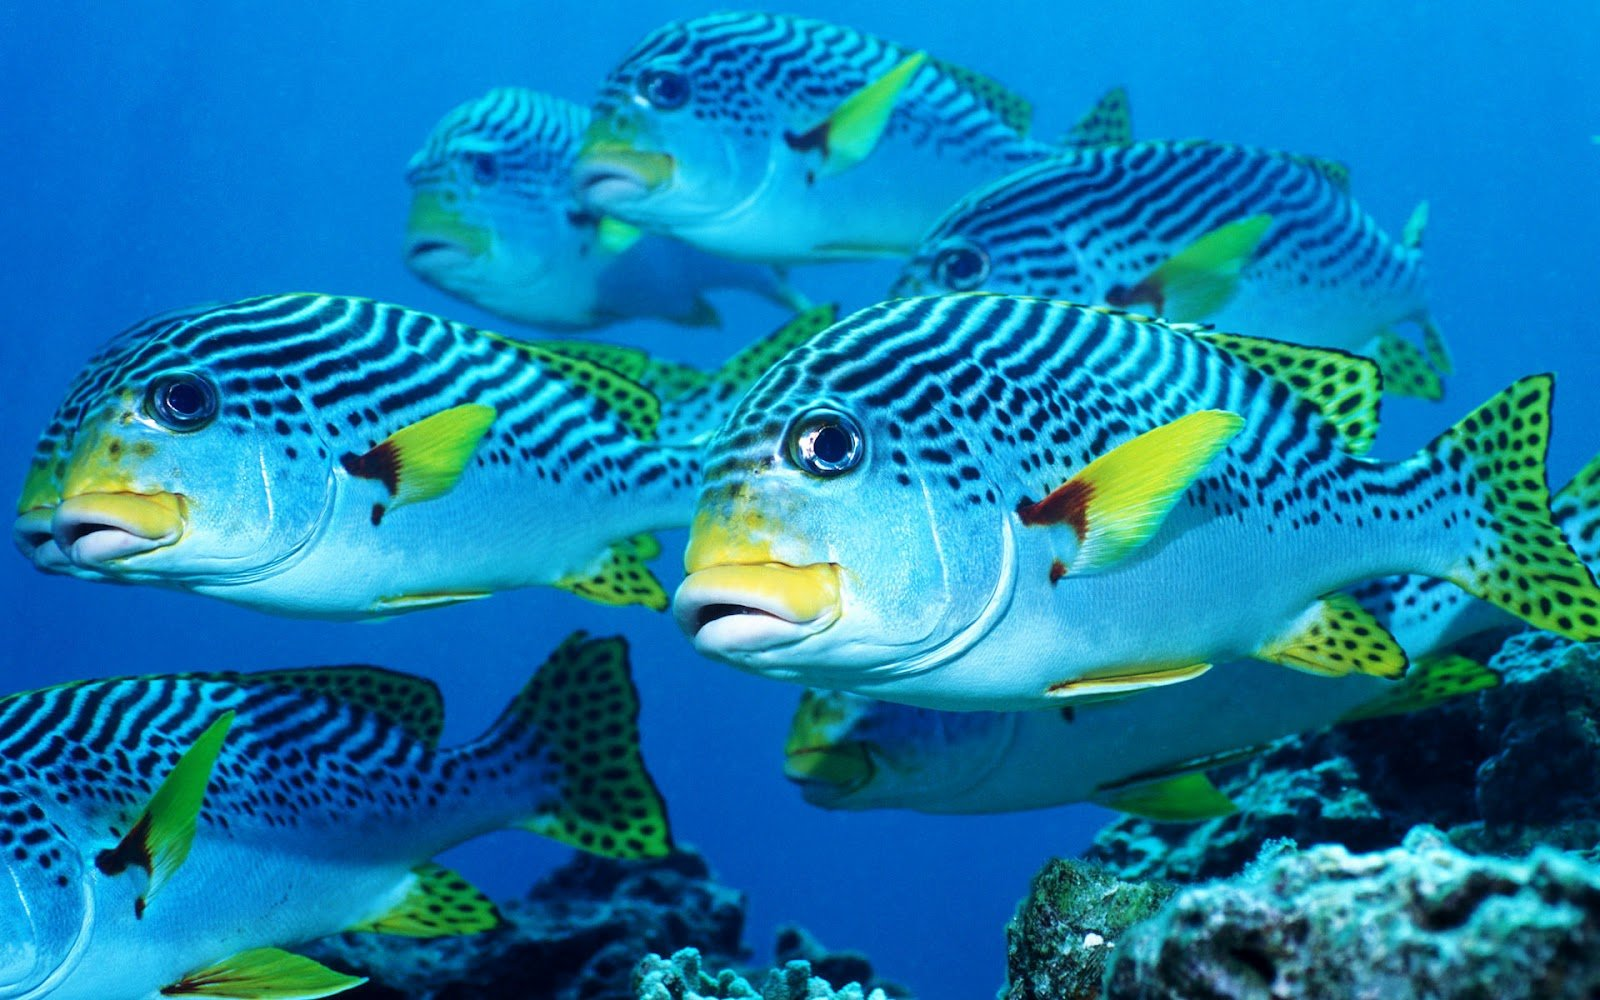 life wallpapers marine life on the seabed like fish plants animals hd 1600x1000